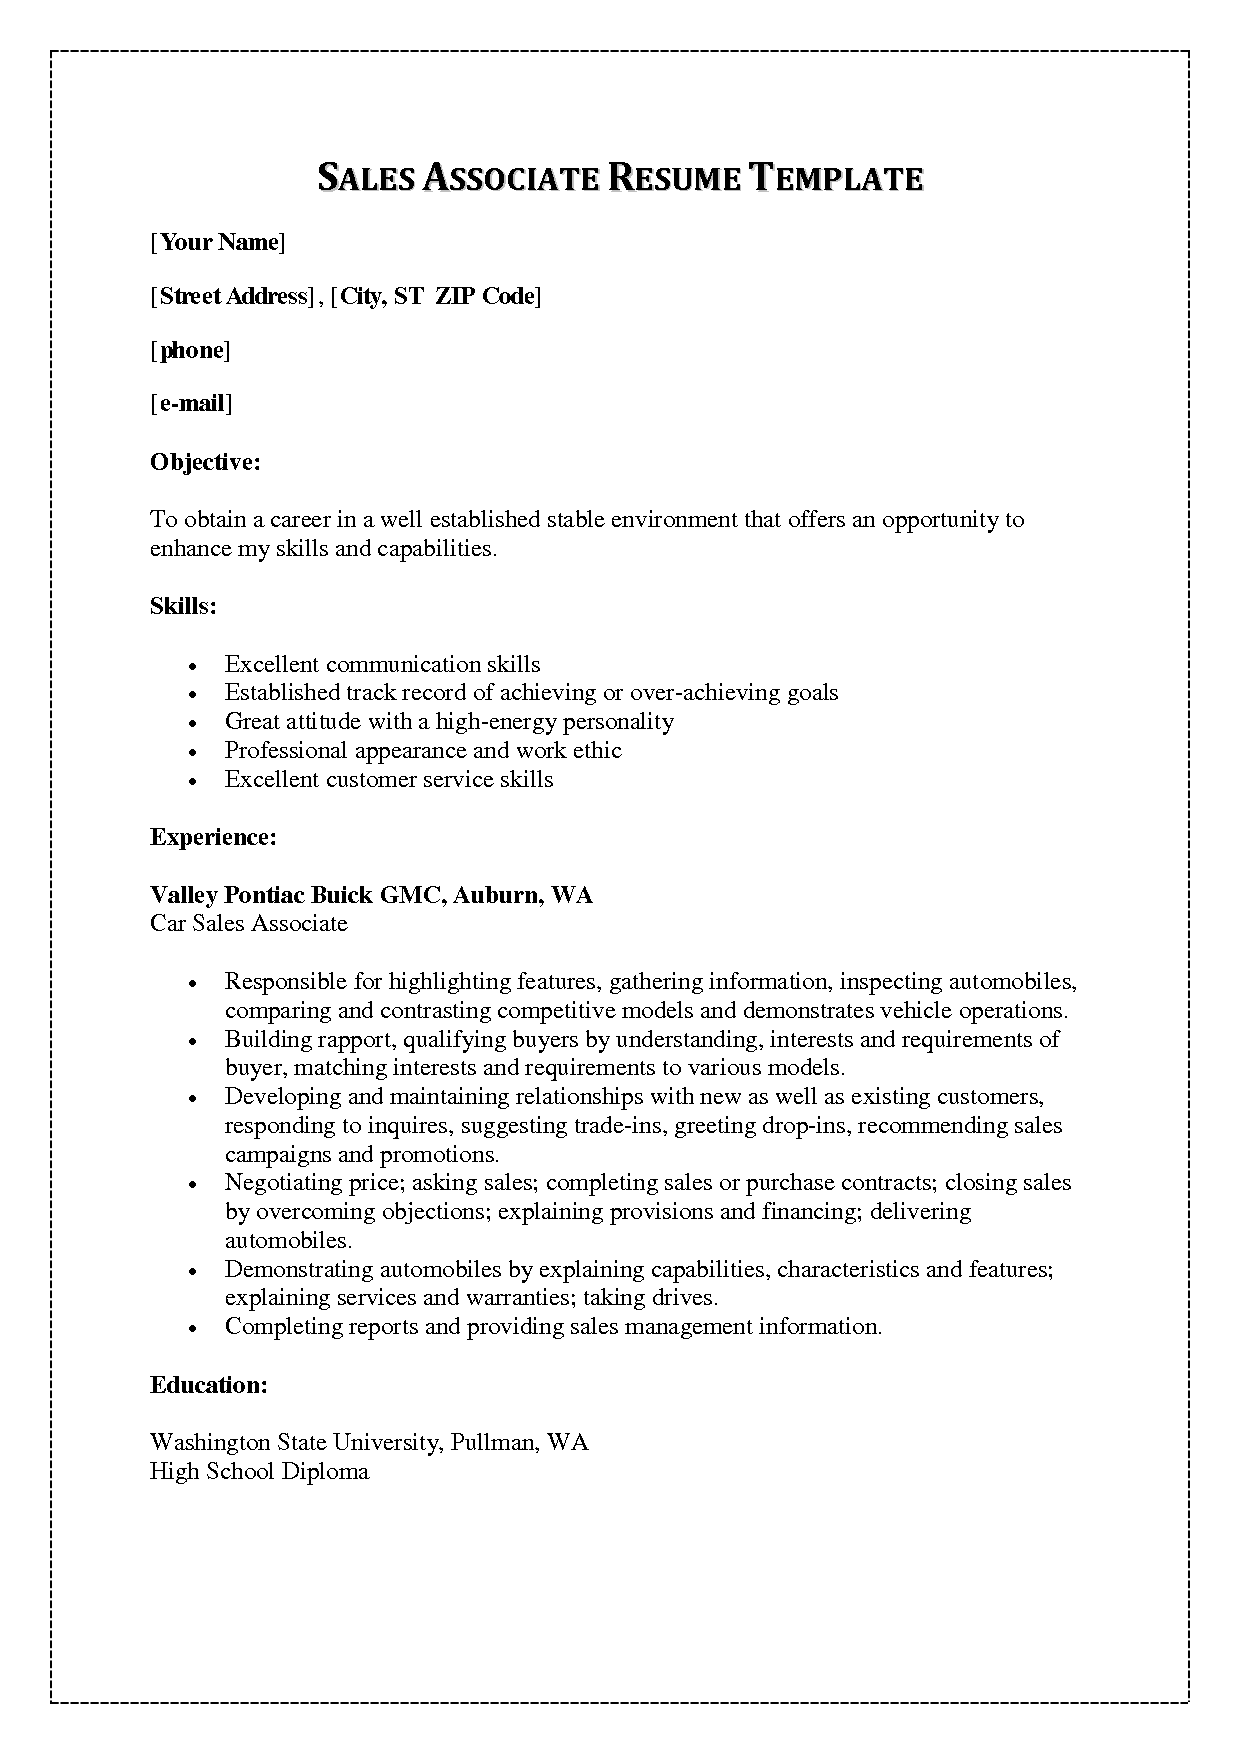 Resume Skills To List On A Resume For Retail resume skills list for sales associate format sample salesperson associate